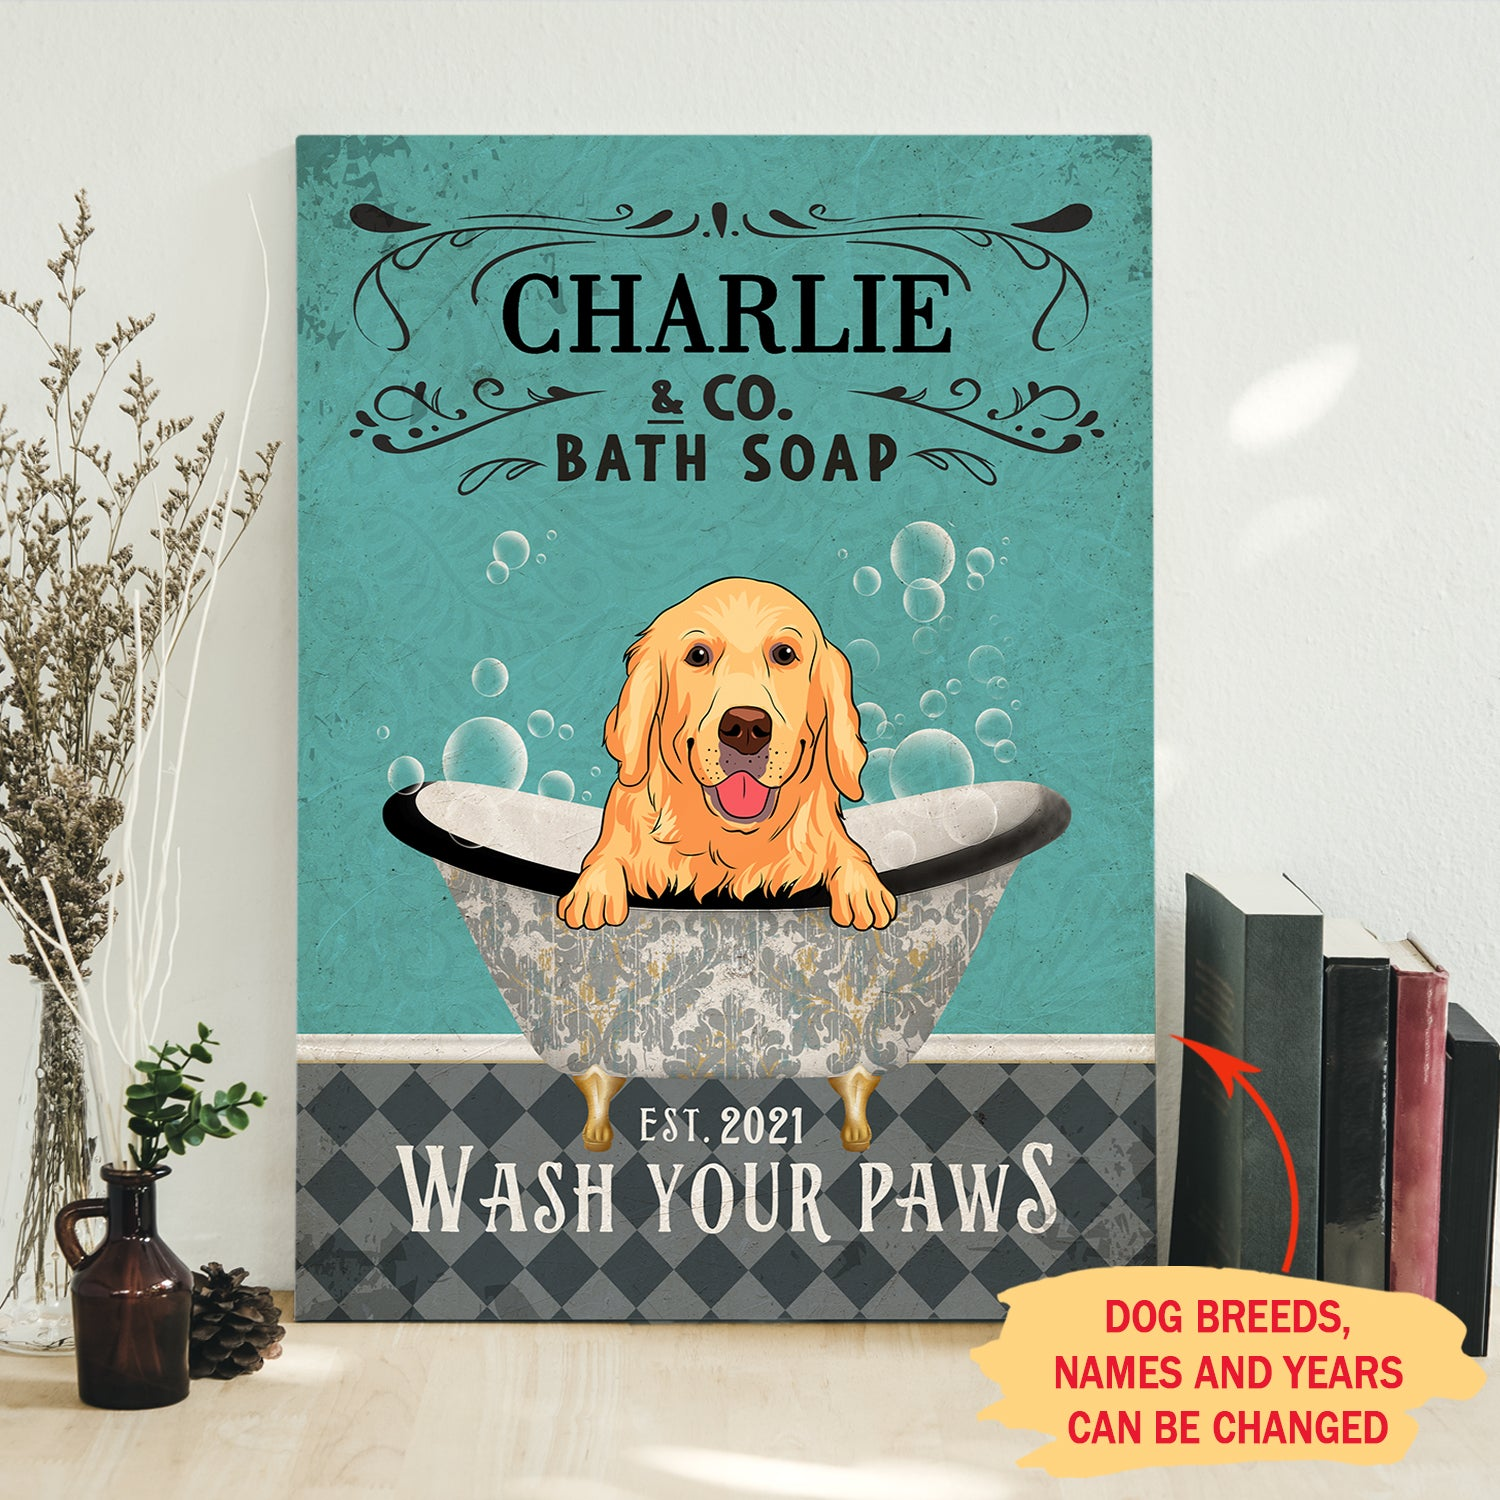 Bath Soap Company - Personalized Custom Canvas - Gifts For Dog Lovers